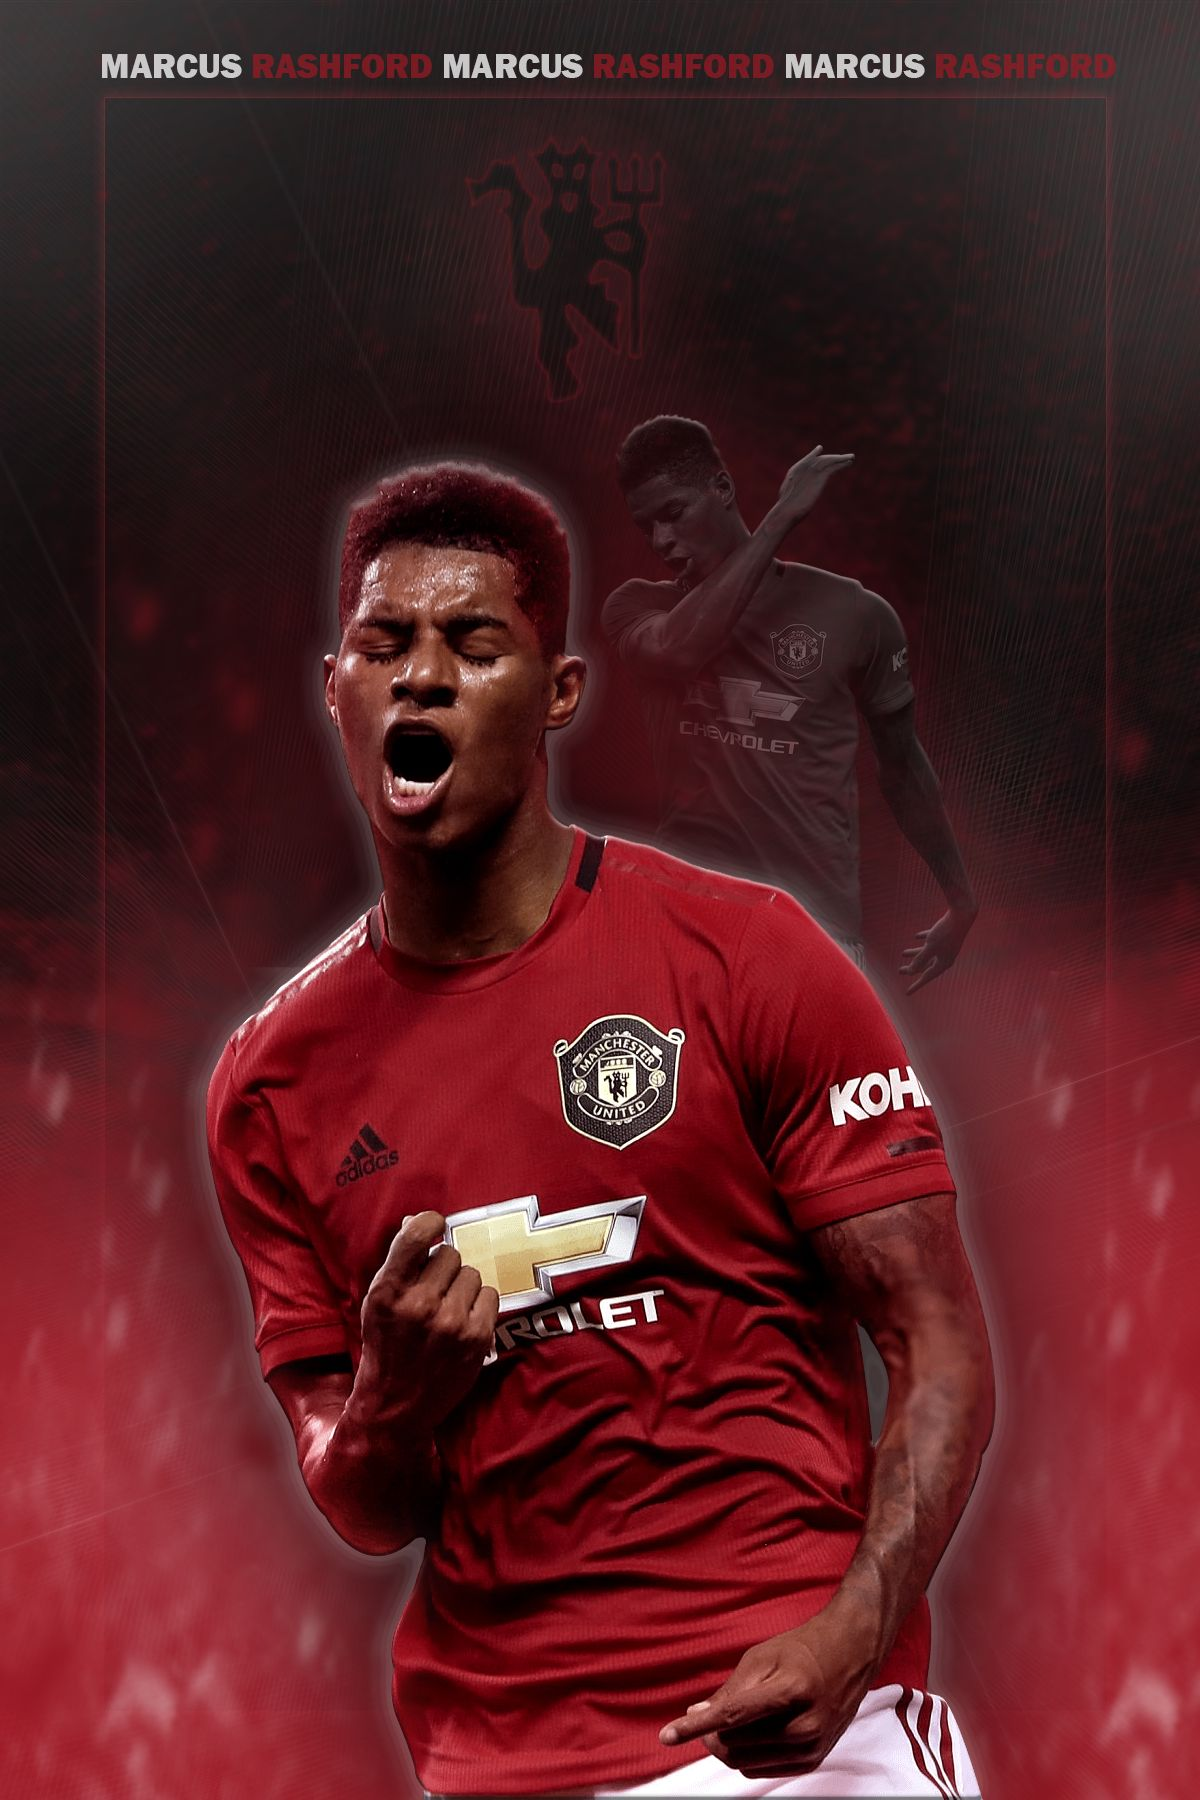 Marcus Rashford Manchester United In 2020 Football Poster Manchester United Poster Manchester United Wallpaper